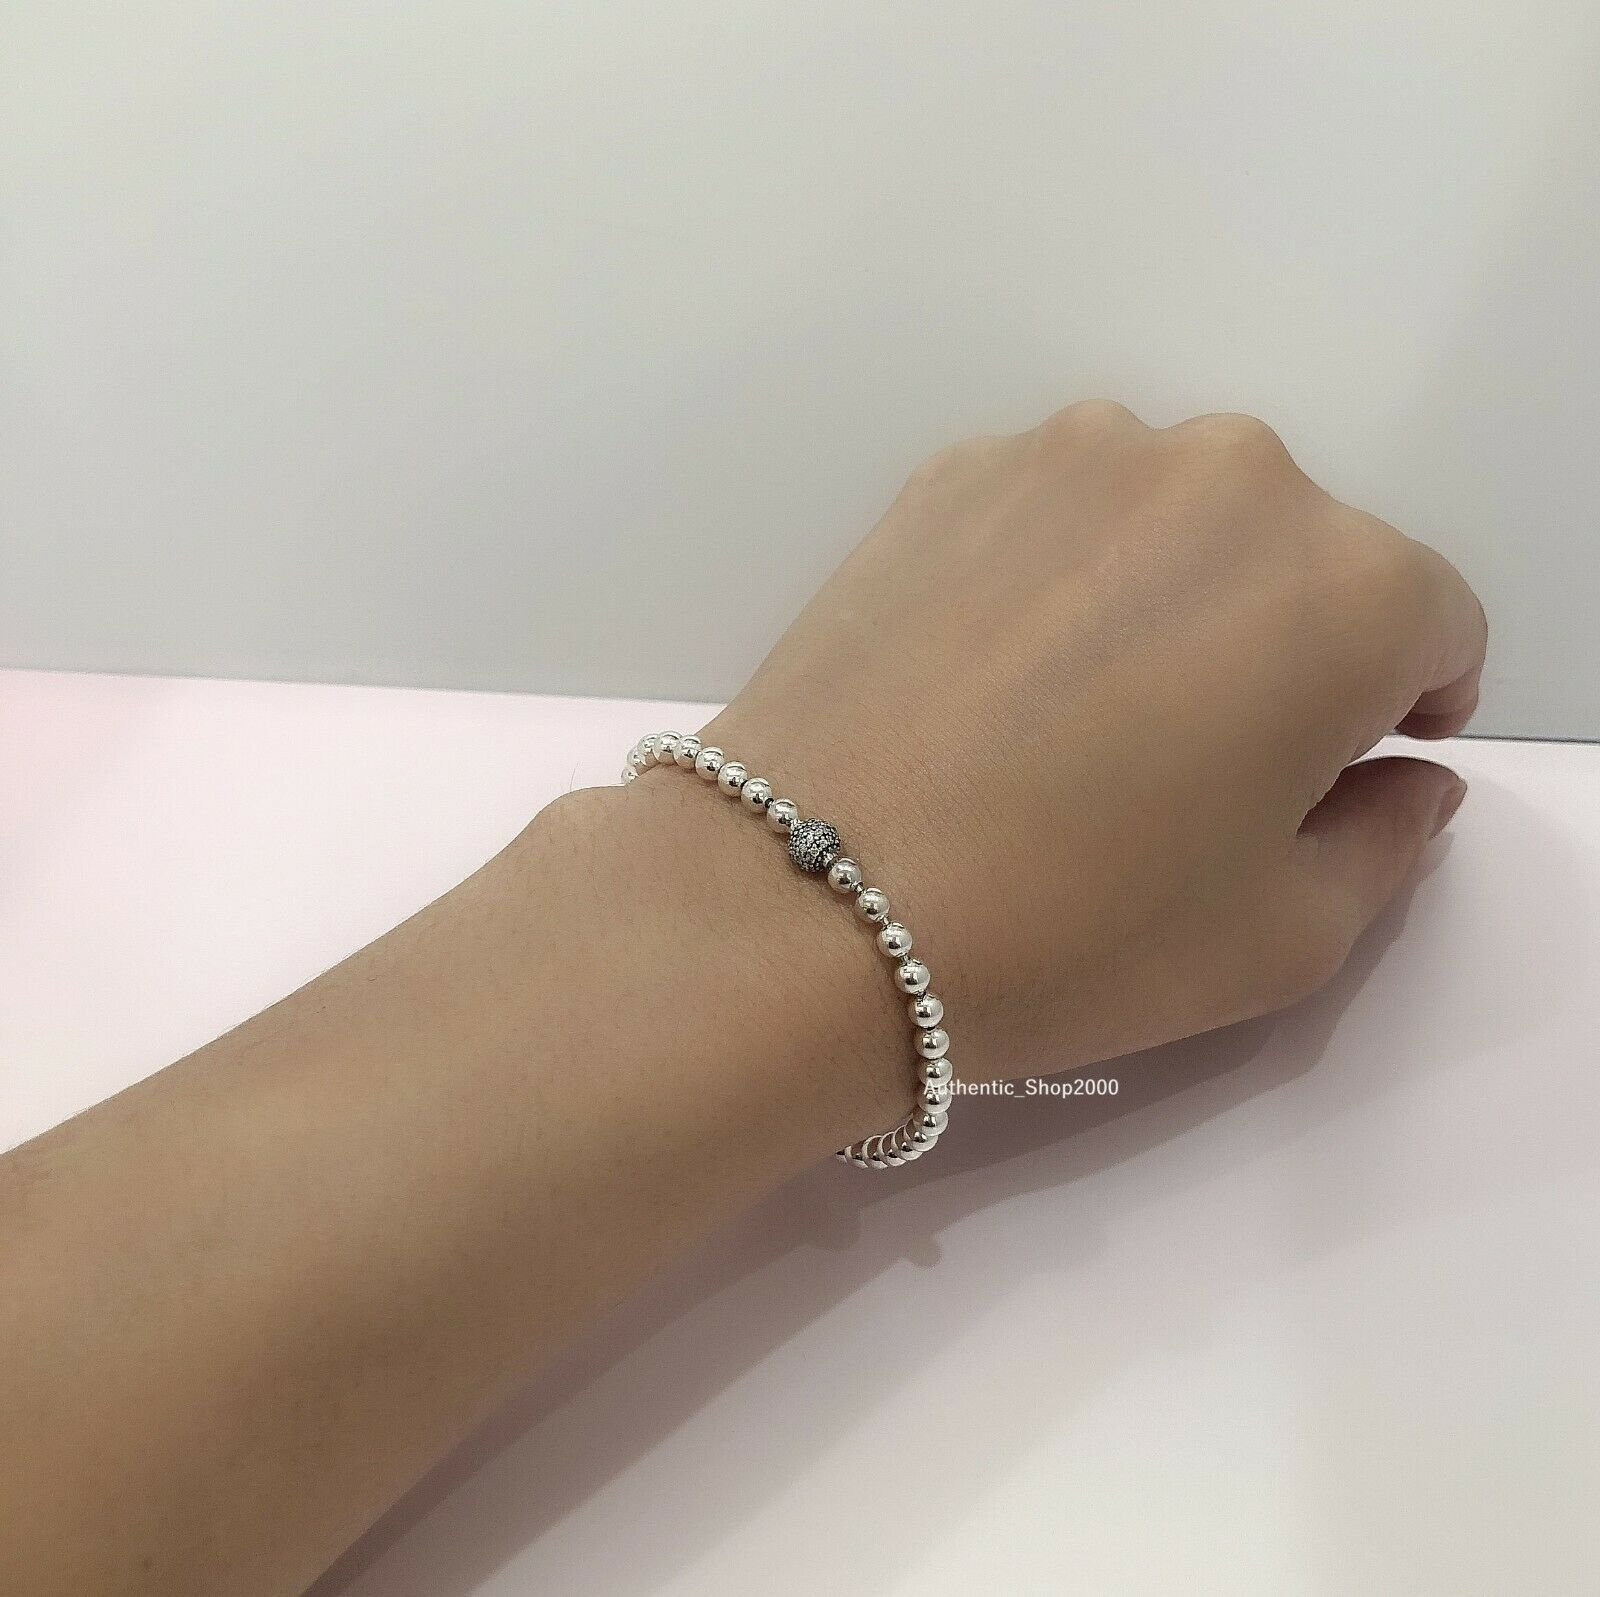 Wave Style Curved Tube Pave Cubic Zirconia Suitable for Leather Bangle Charm Bracelet Making 25x8mm 1Pcs